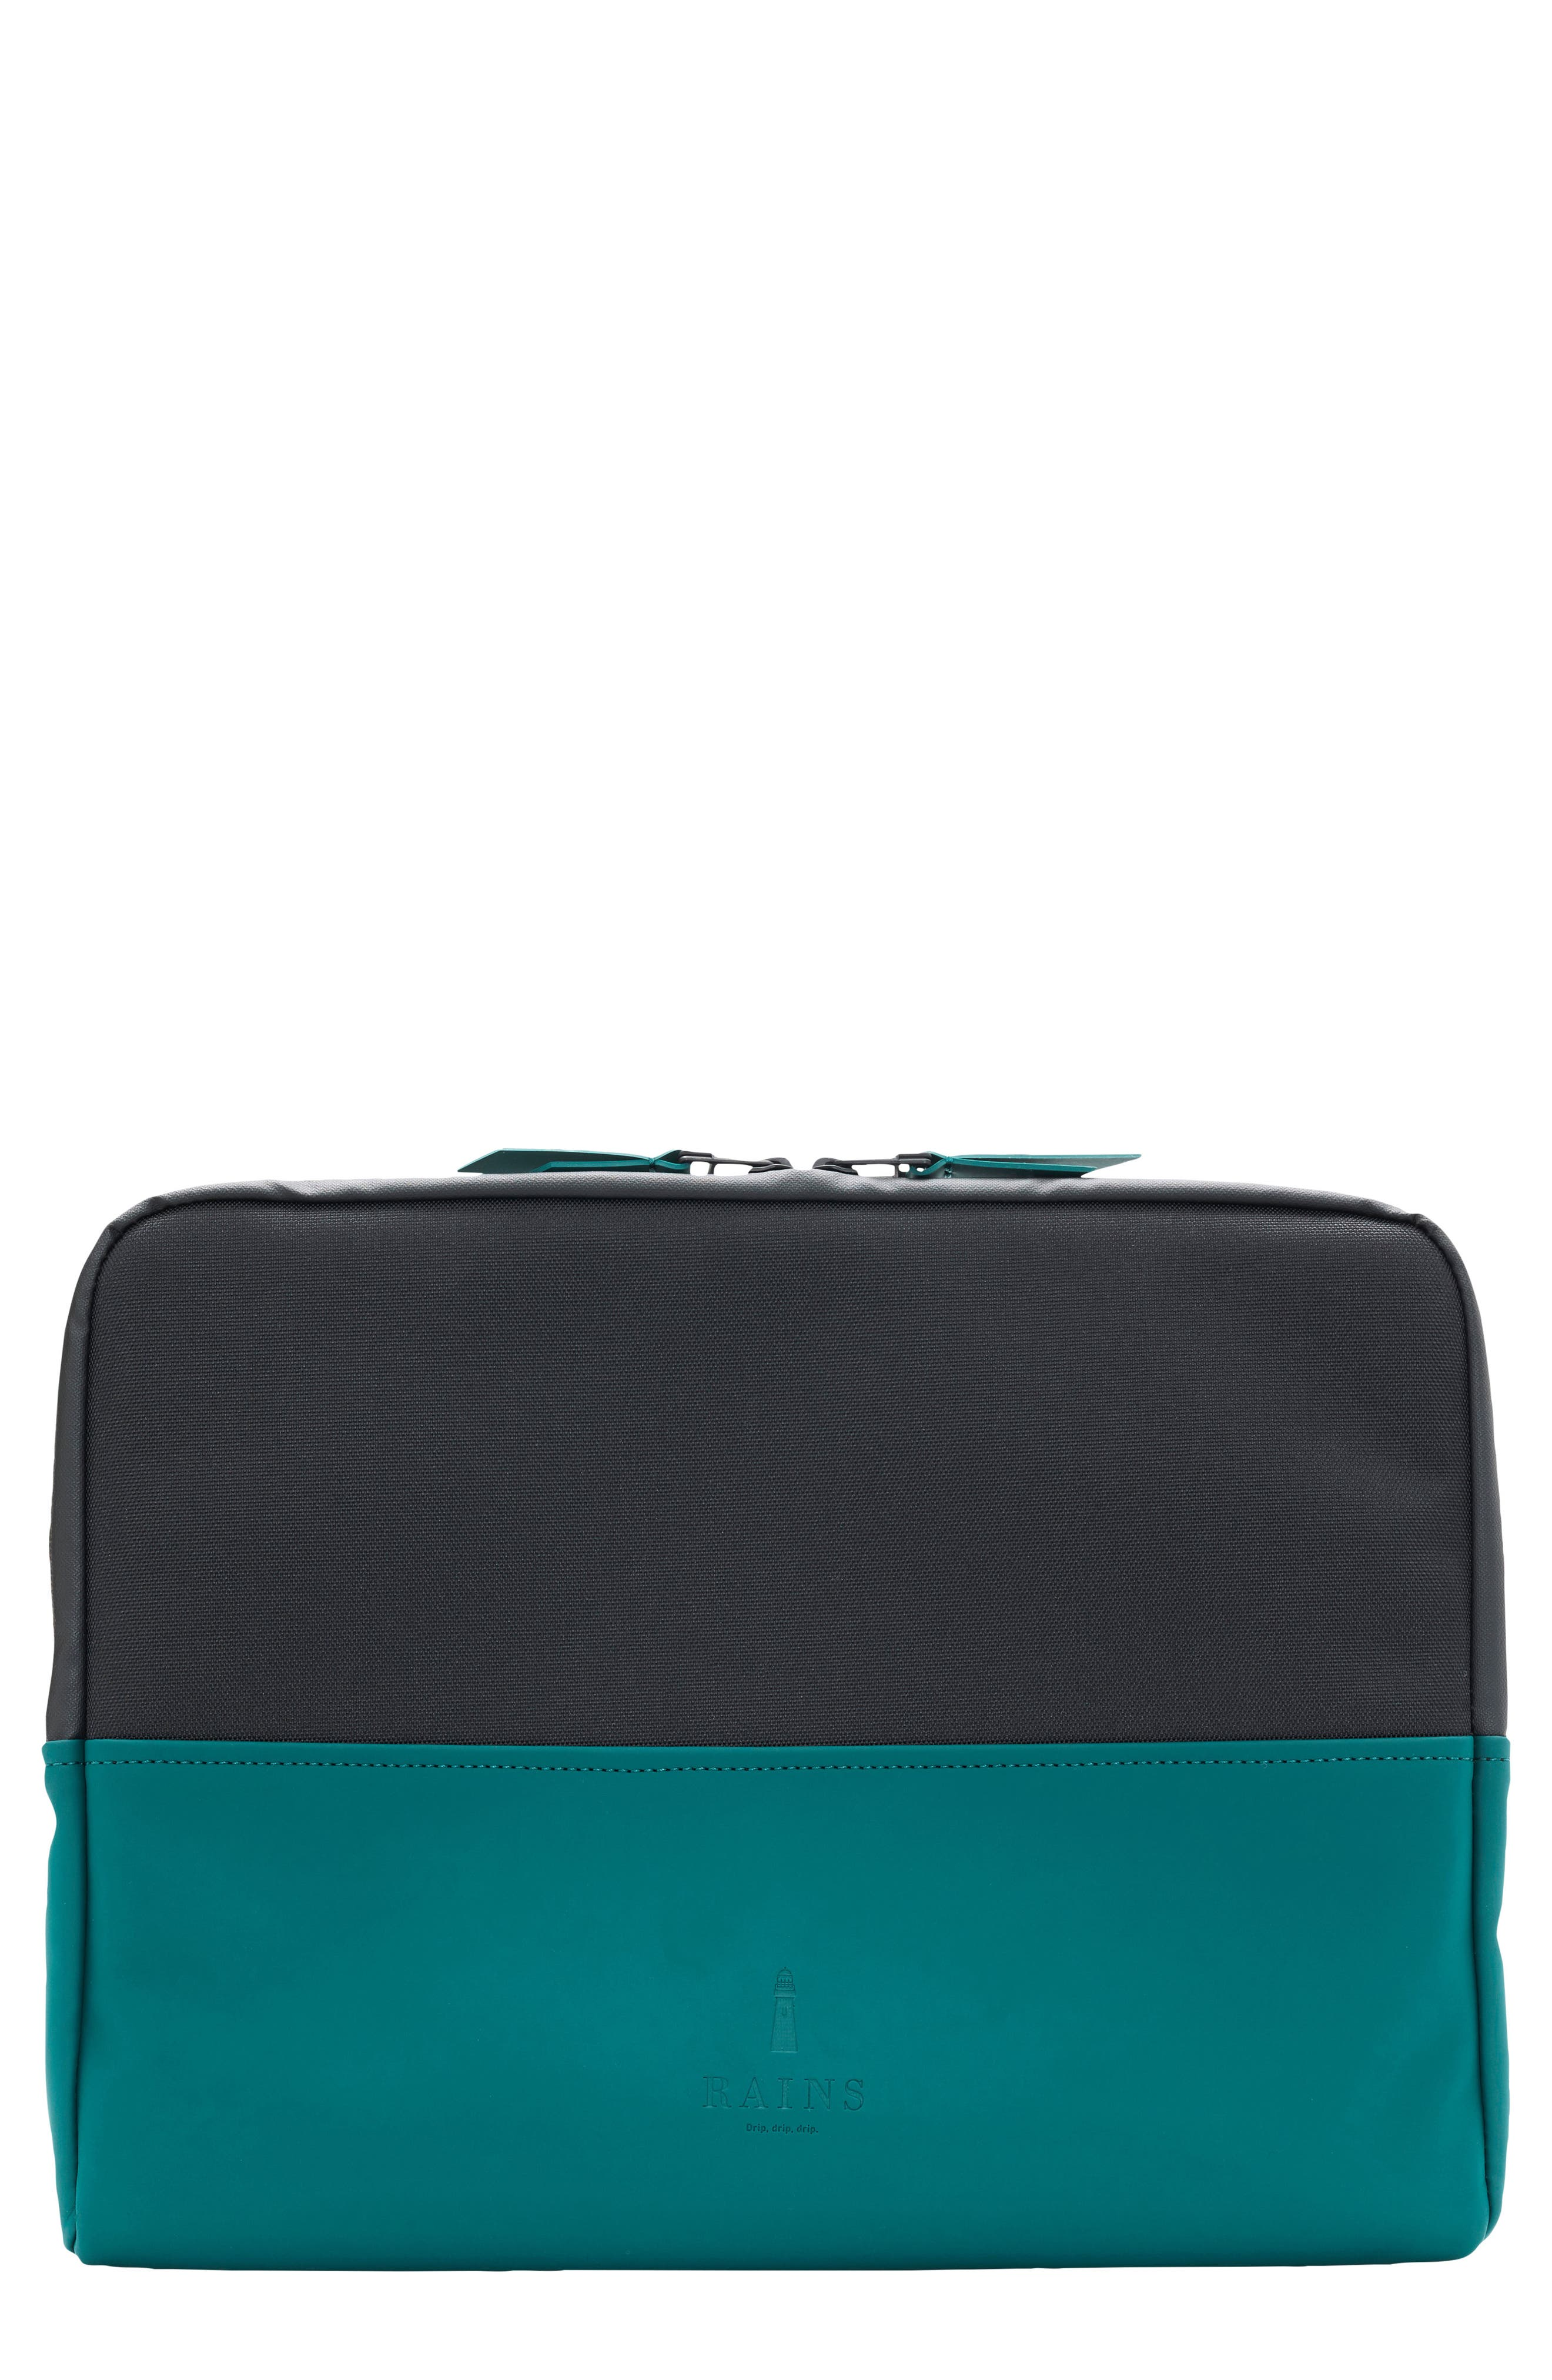 13-Inch Laptop Sleeve,                         Main,                         color, Dark Teal